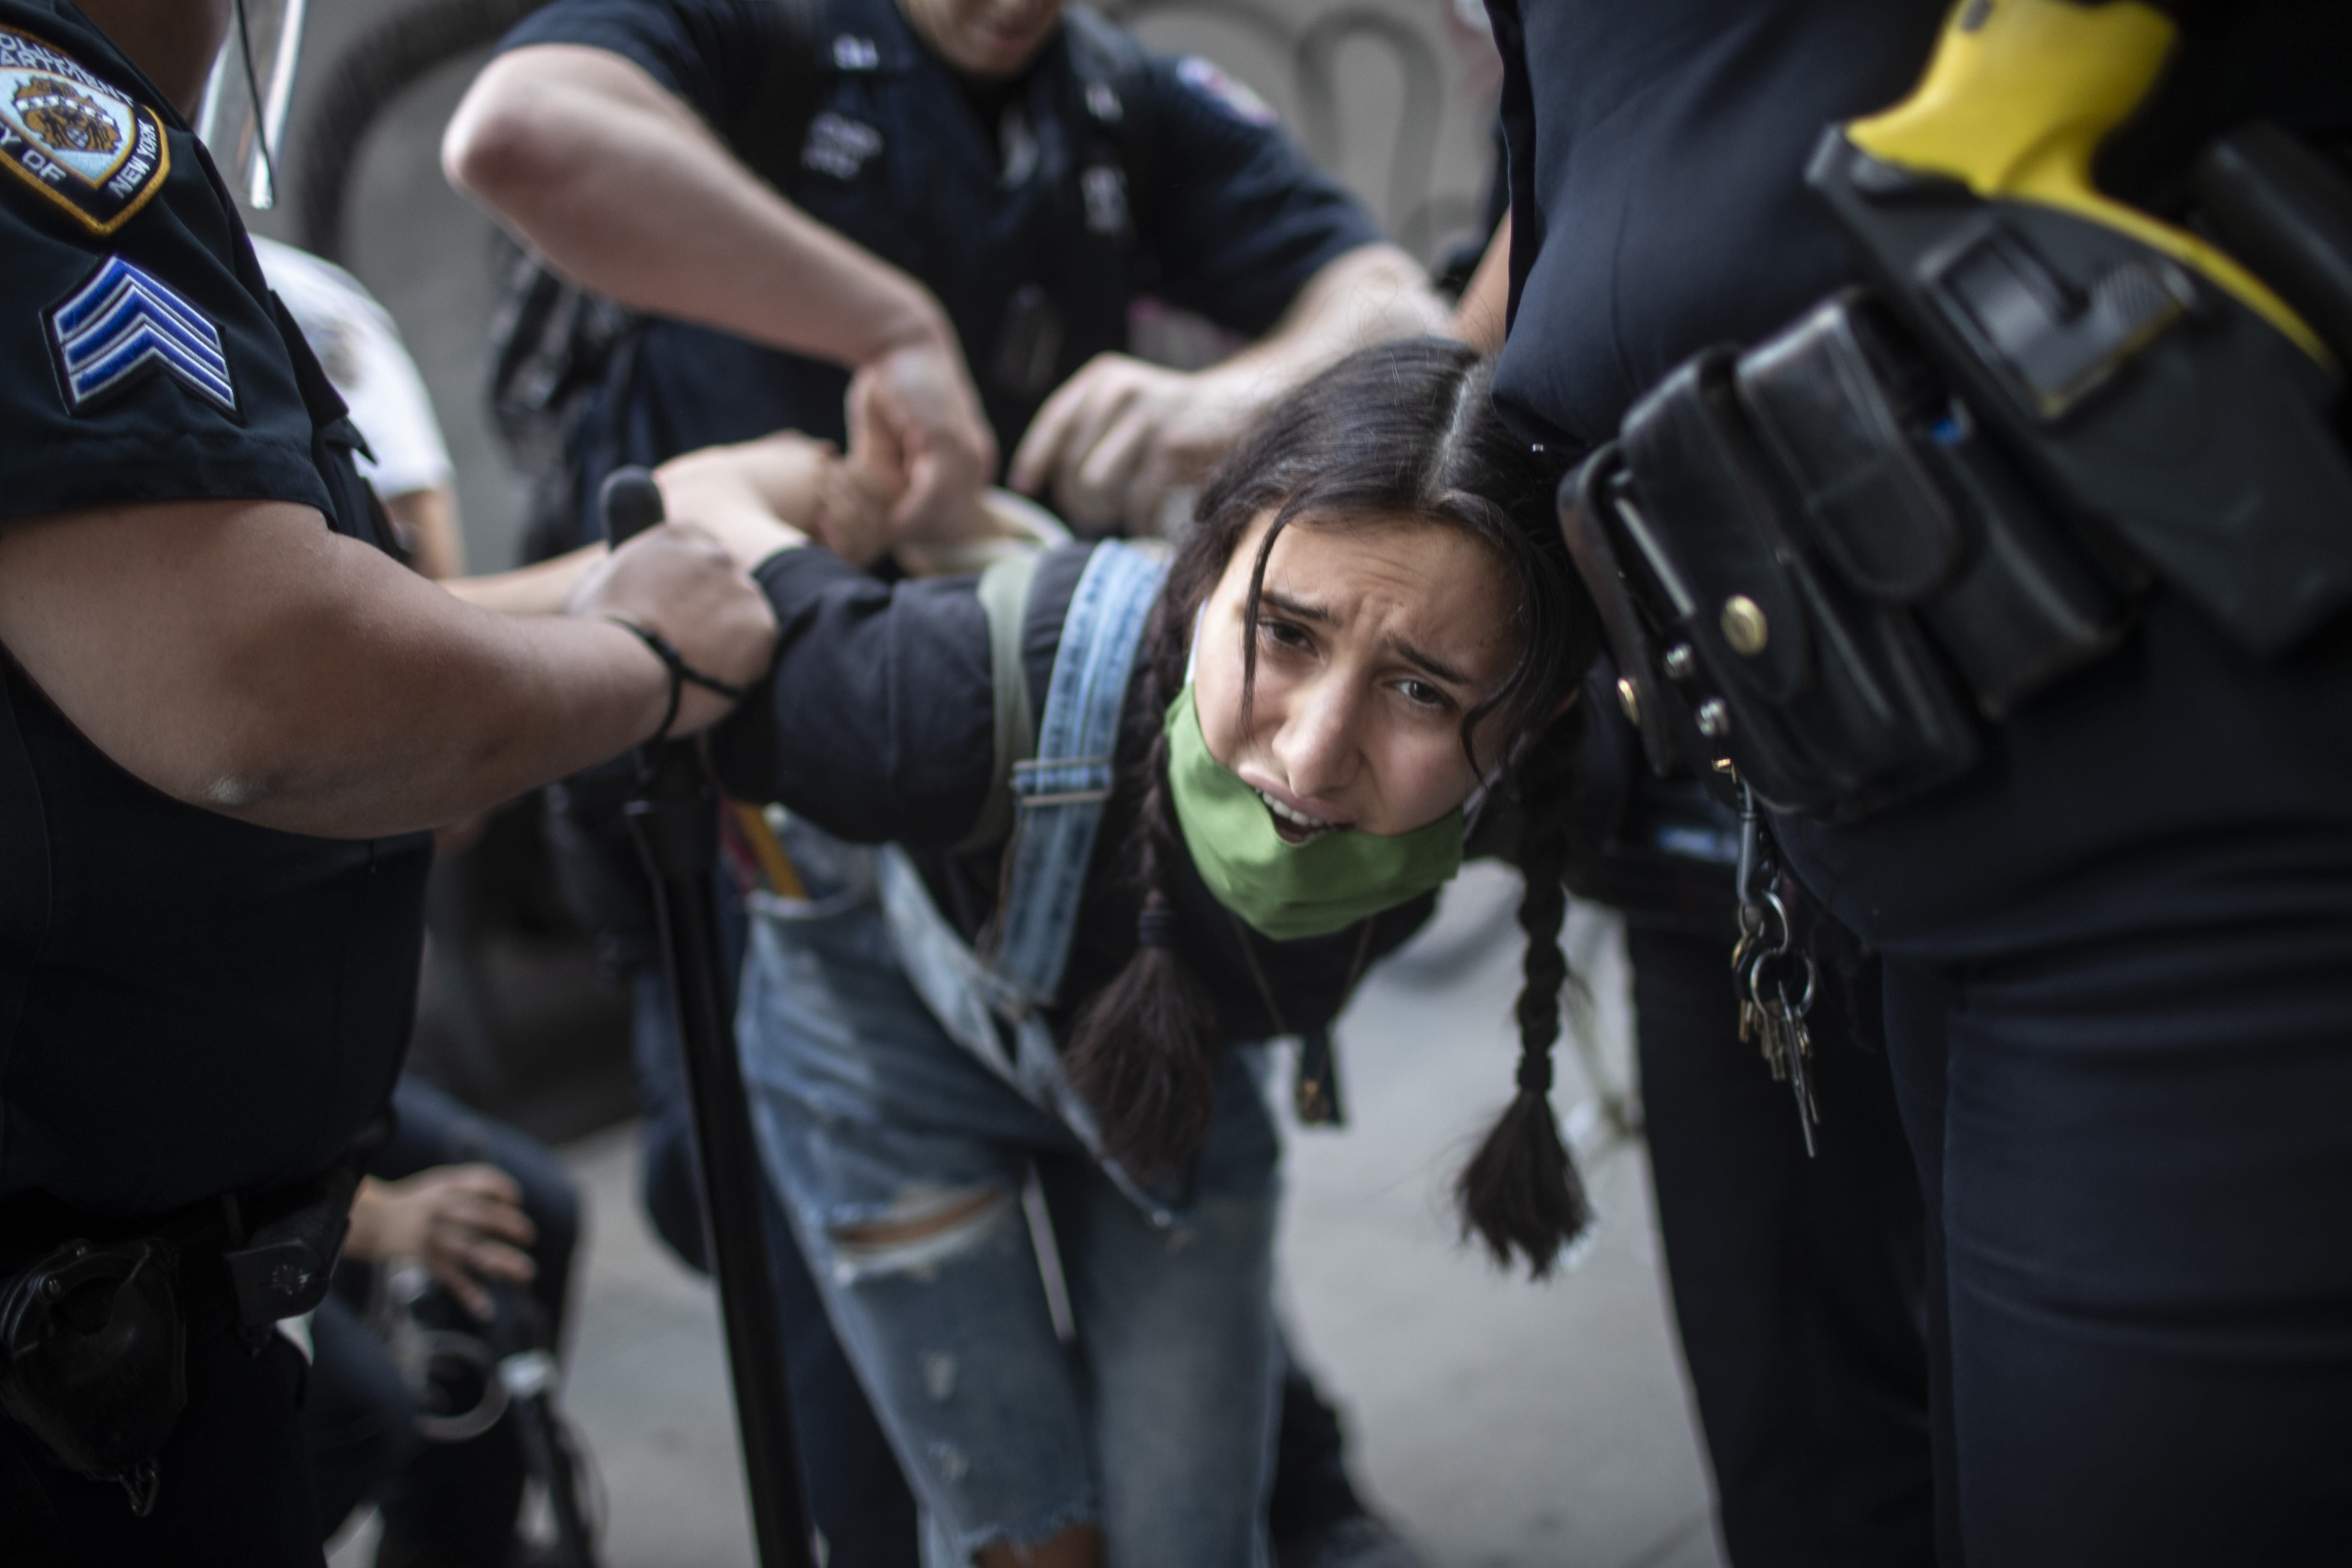 A nude protester is arrested by police during an anti